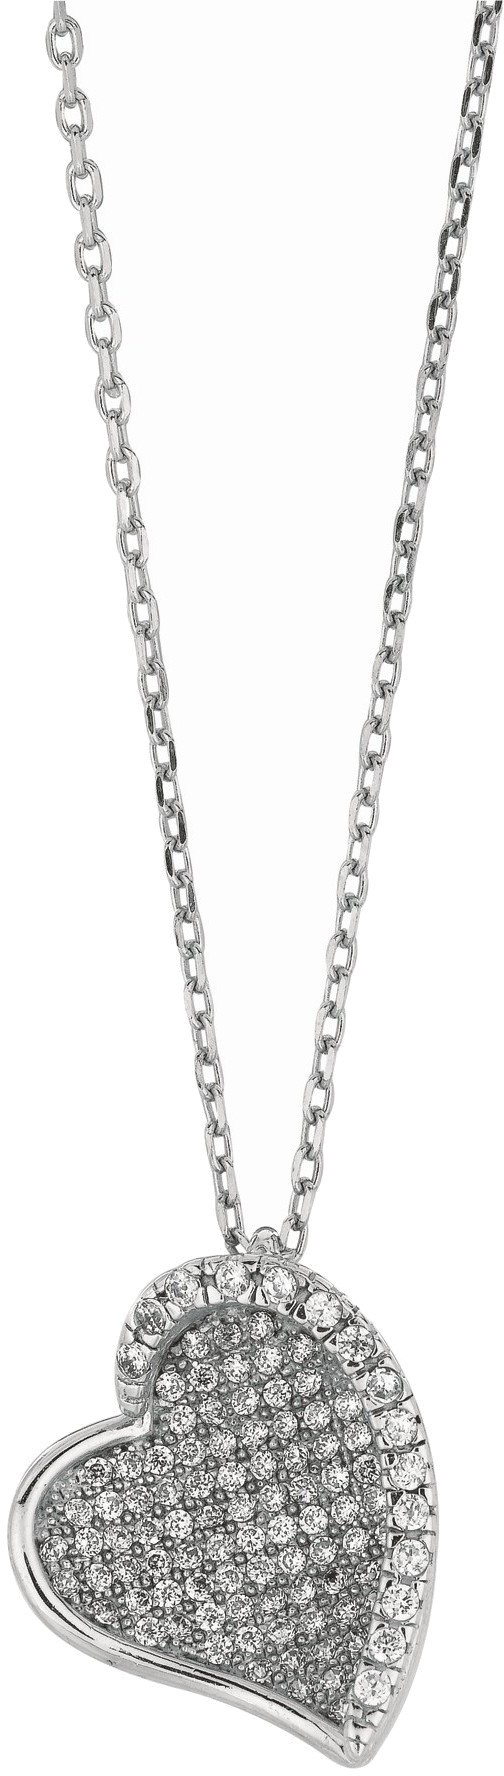 "18"" Rhodium Plated 925 Sterling Silver 1.1mm (0.04"") Cable Chain w/ Lobster Clasp & Heart Shape Pendant w/ Clear Cubic Zirconia (CZ)"